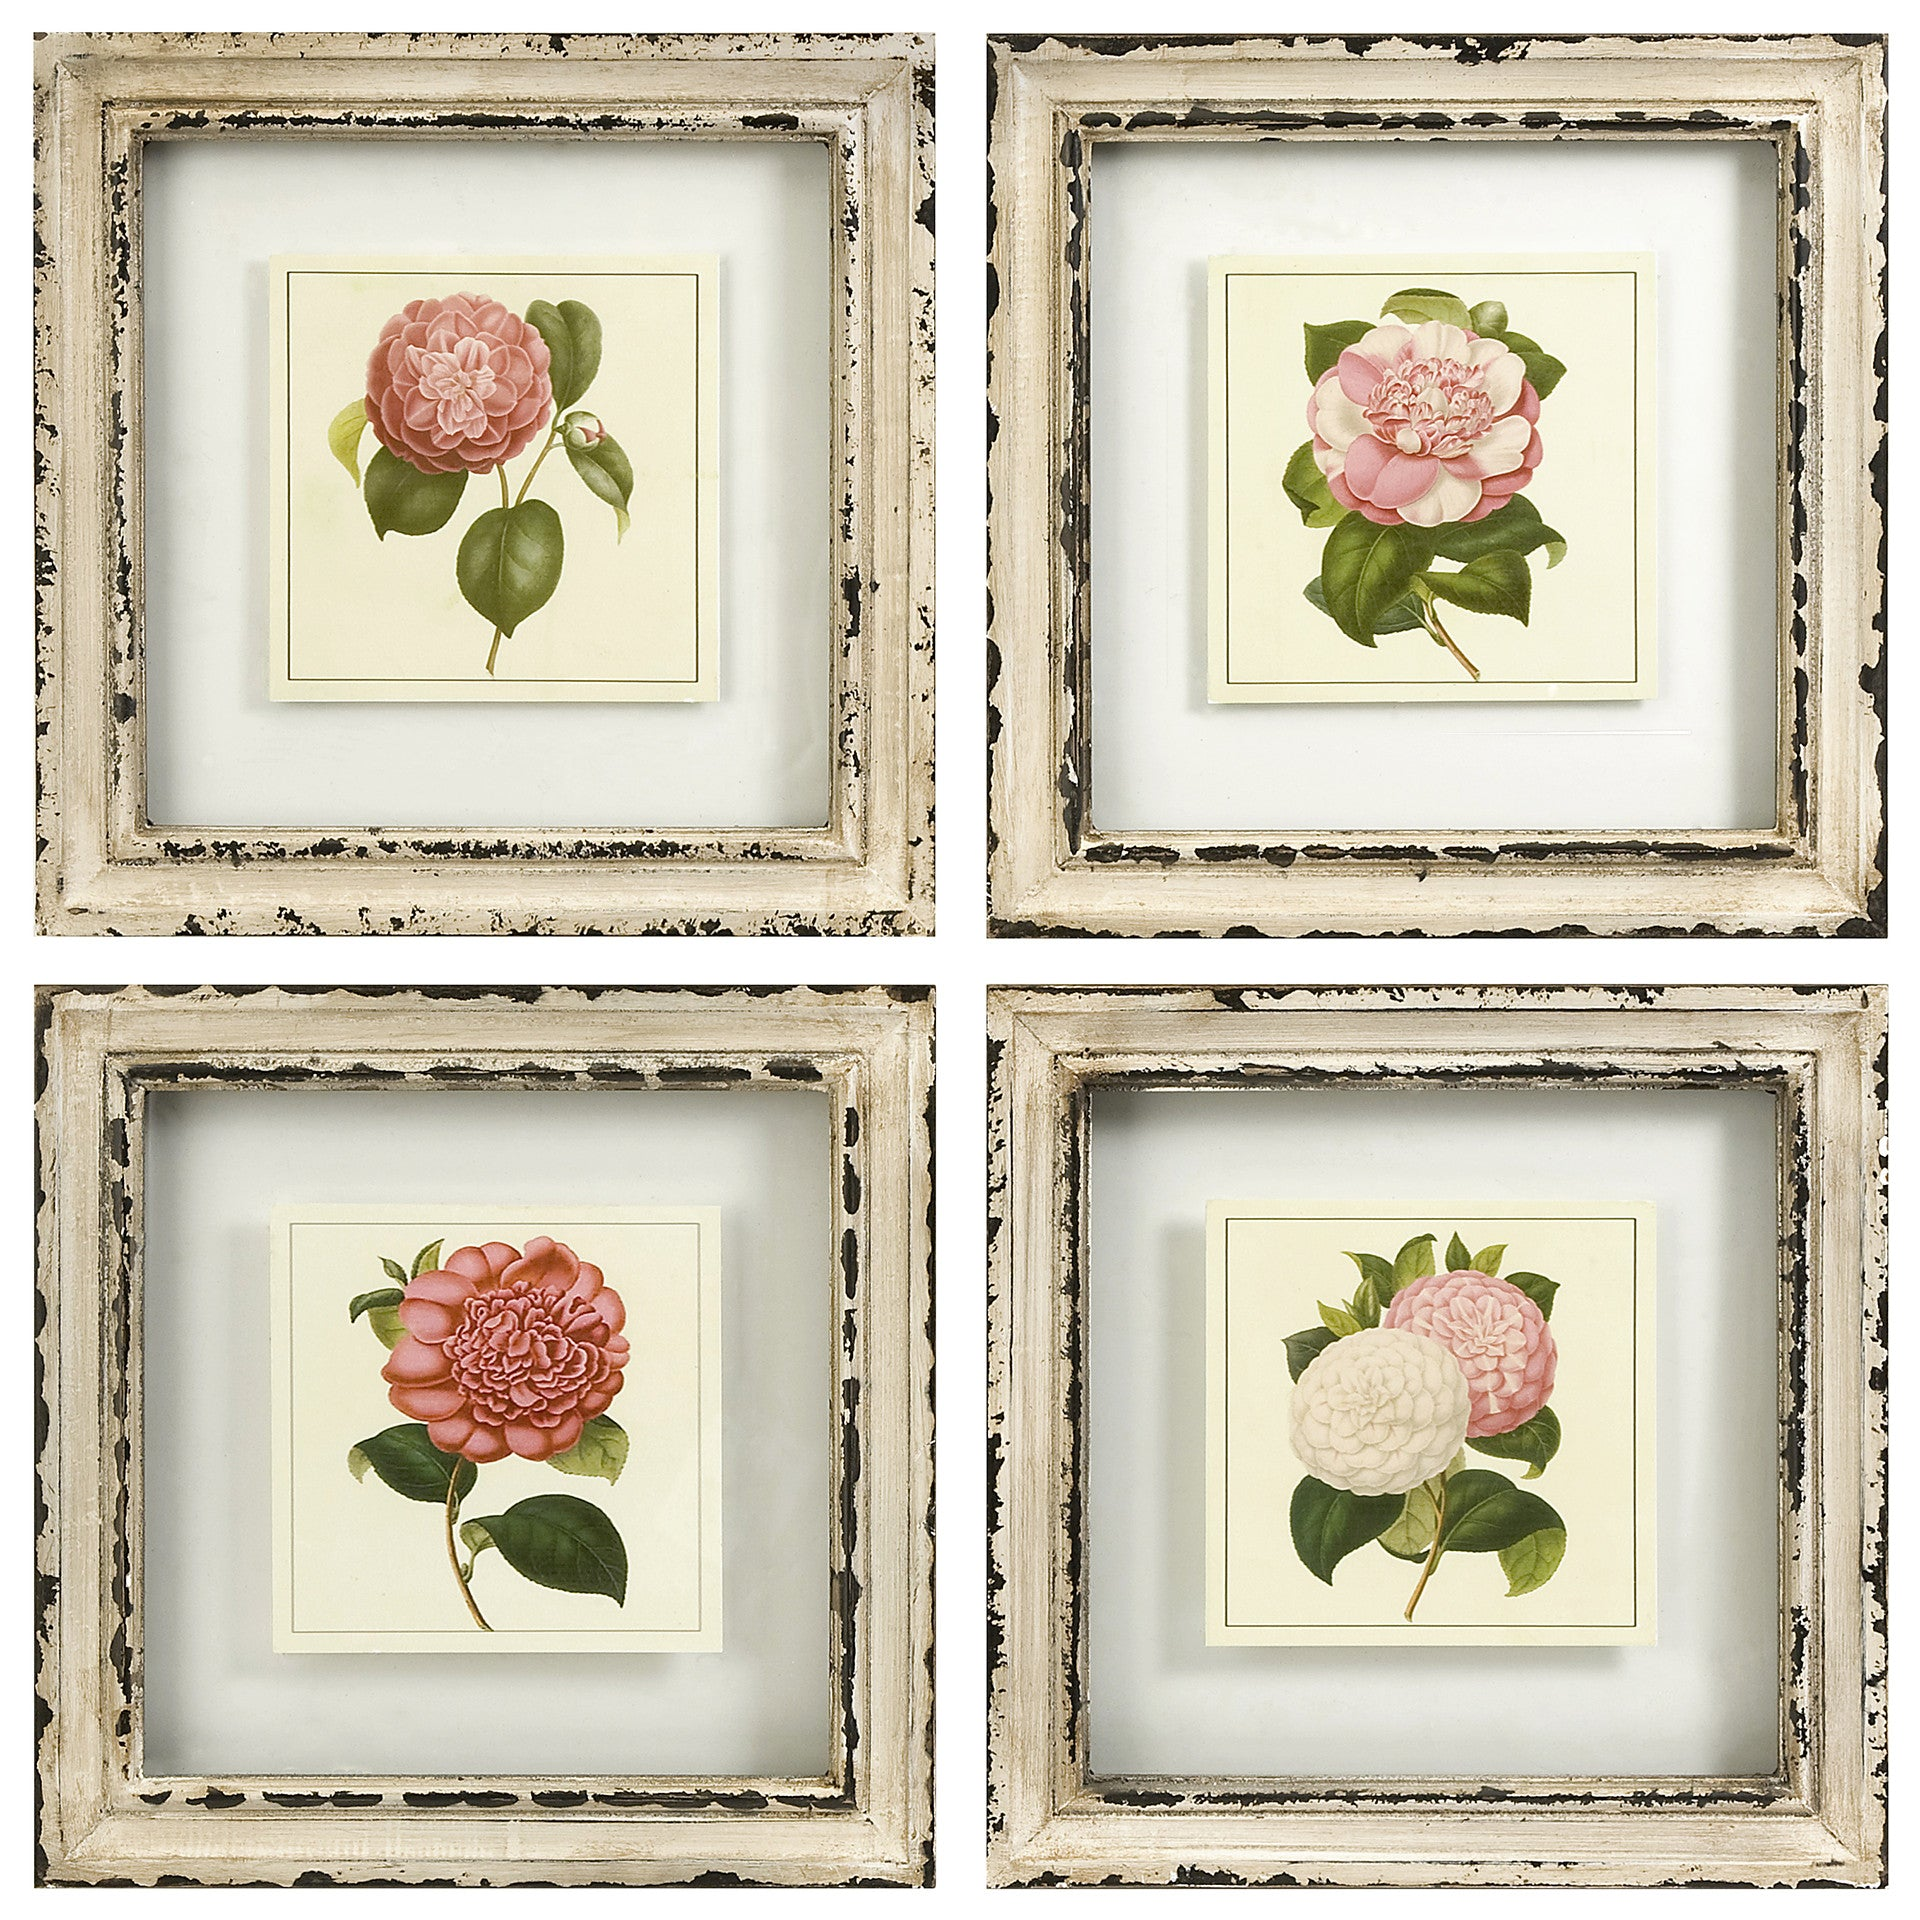 Pink Floral Flower Wall Art Prints Rustic Cream Frames - Set of 4